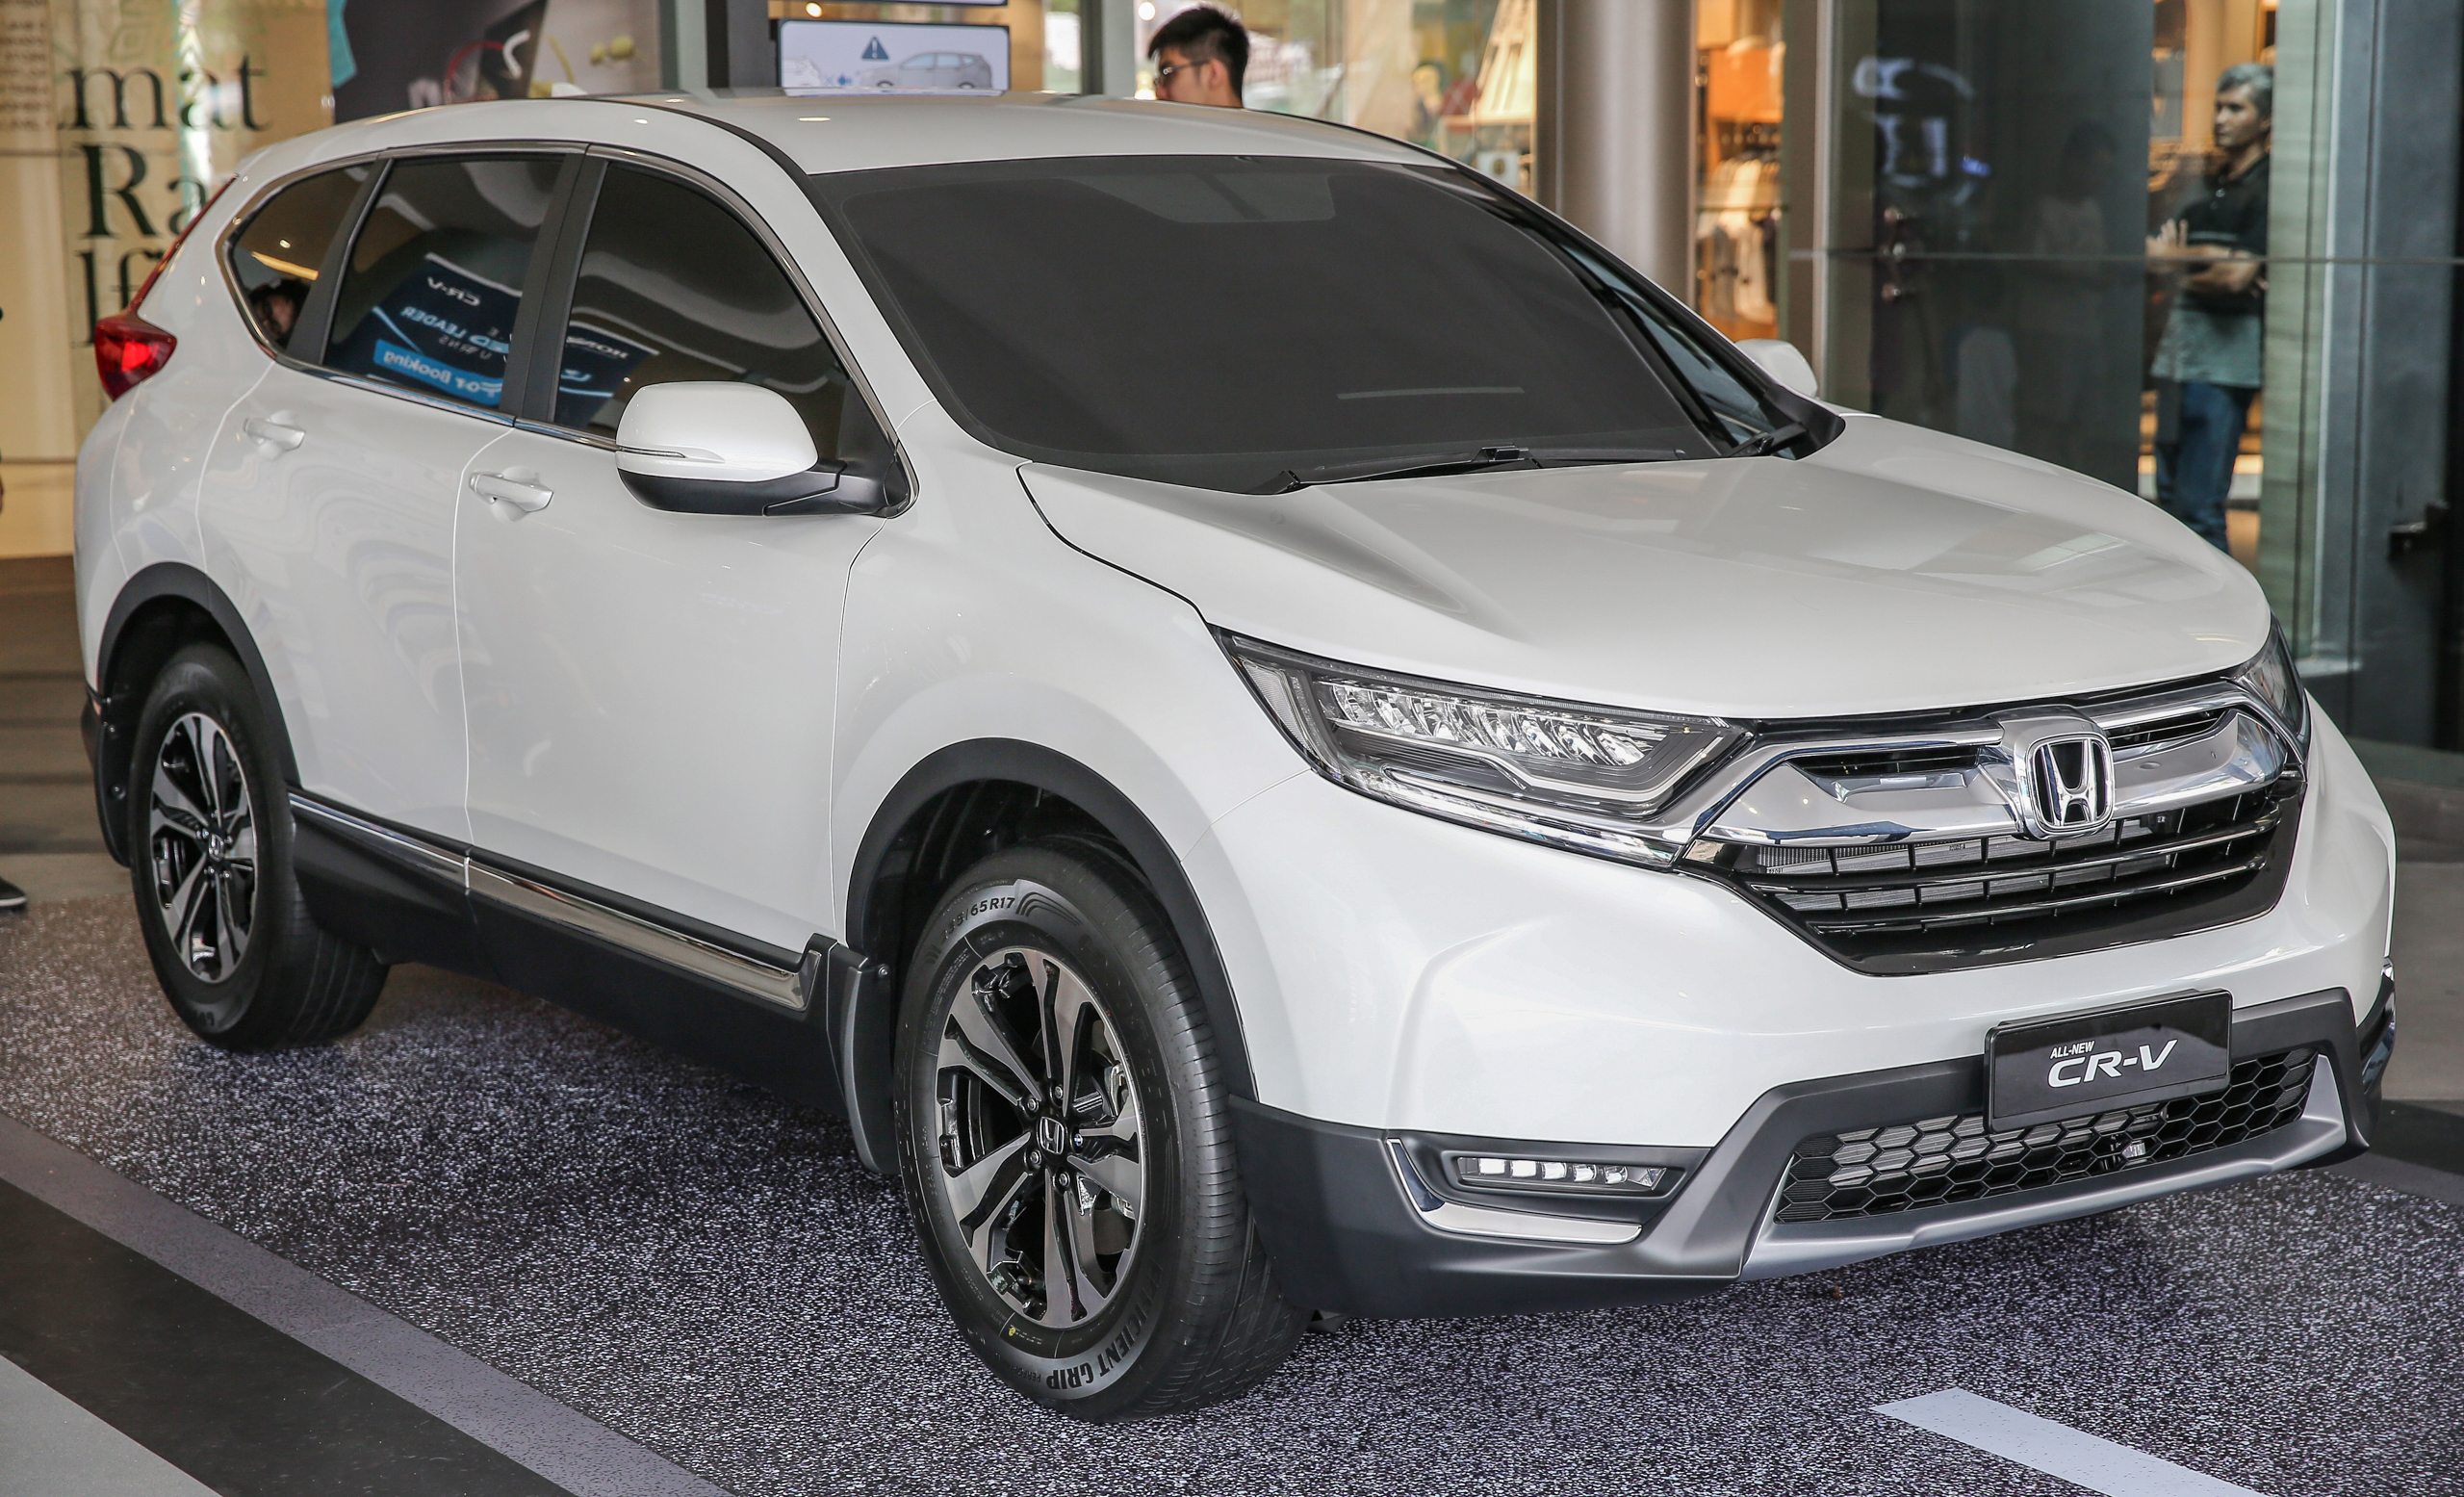 2017 Honda CR-V makes first Malaysian appearance - 2.0L NA to join 1.5L Turbo, live gallery from